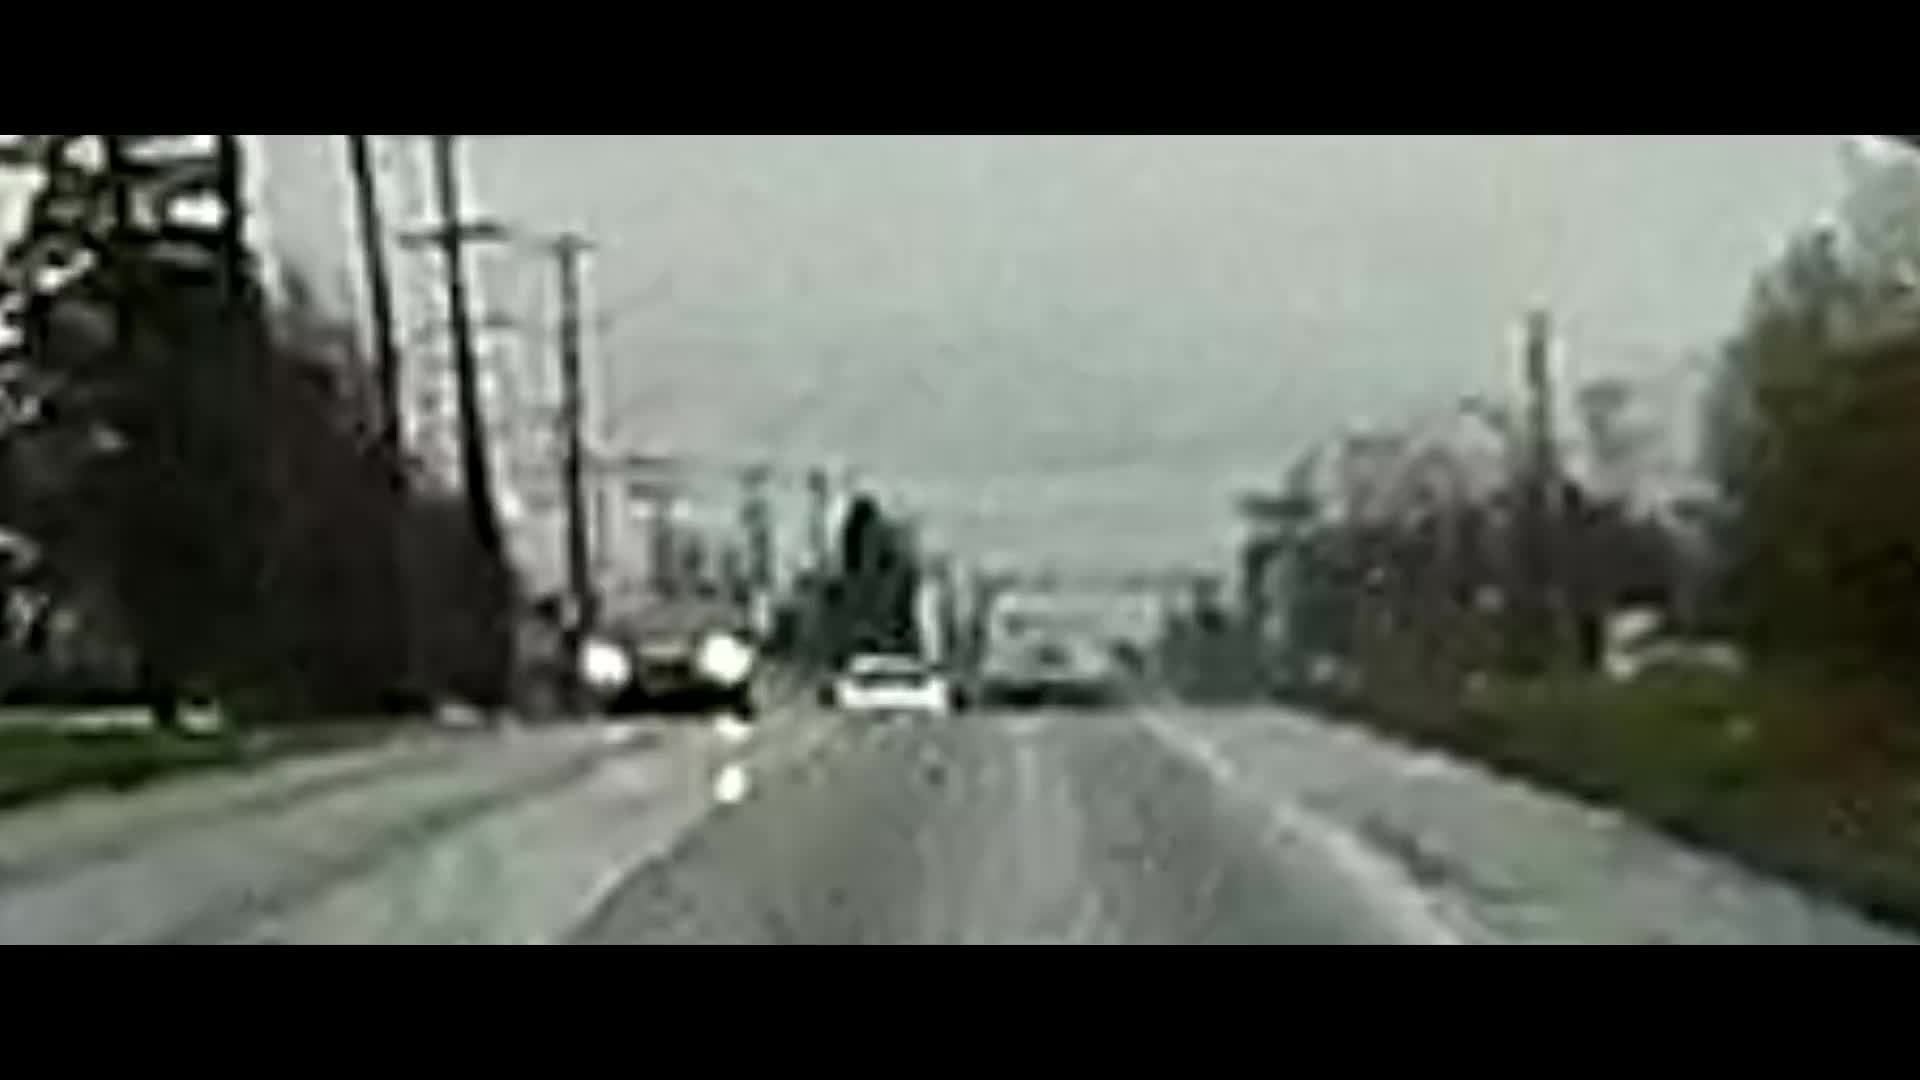 roadcam, roadcam dash cam bad driver, Bad Drivers of Amherst, NY GIFs